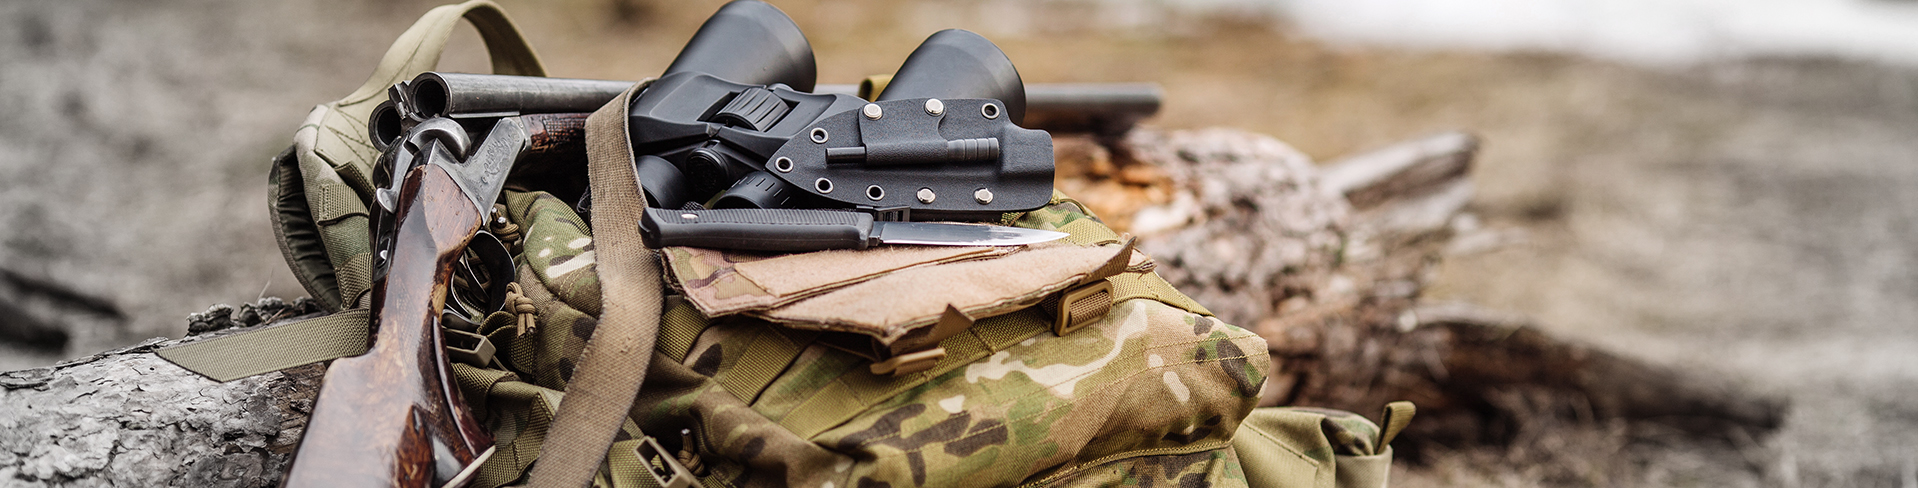 West Texas Justice | Firearms and Gear for sale | Lubbock